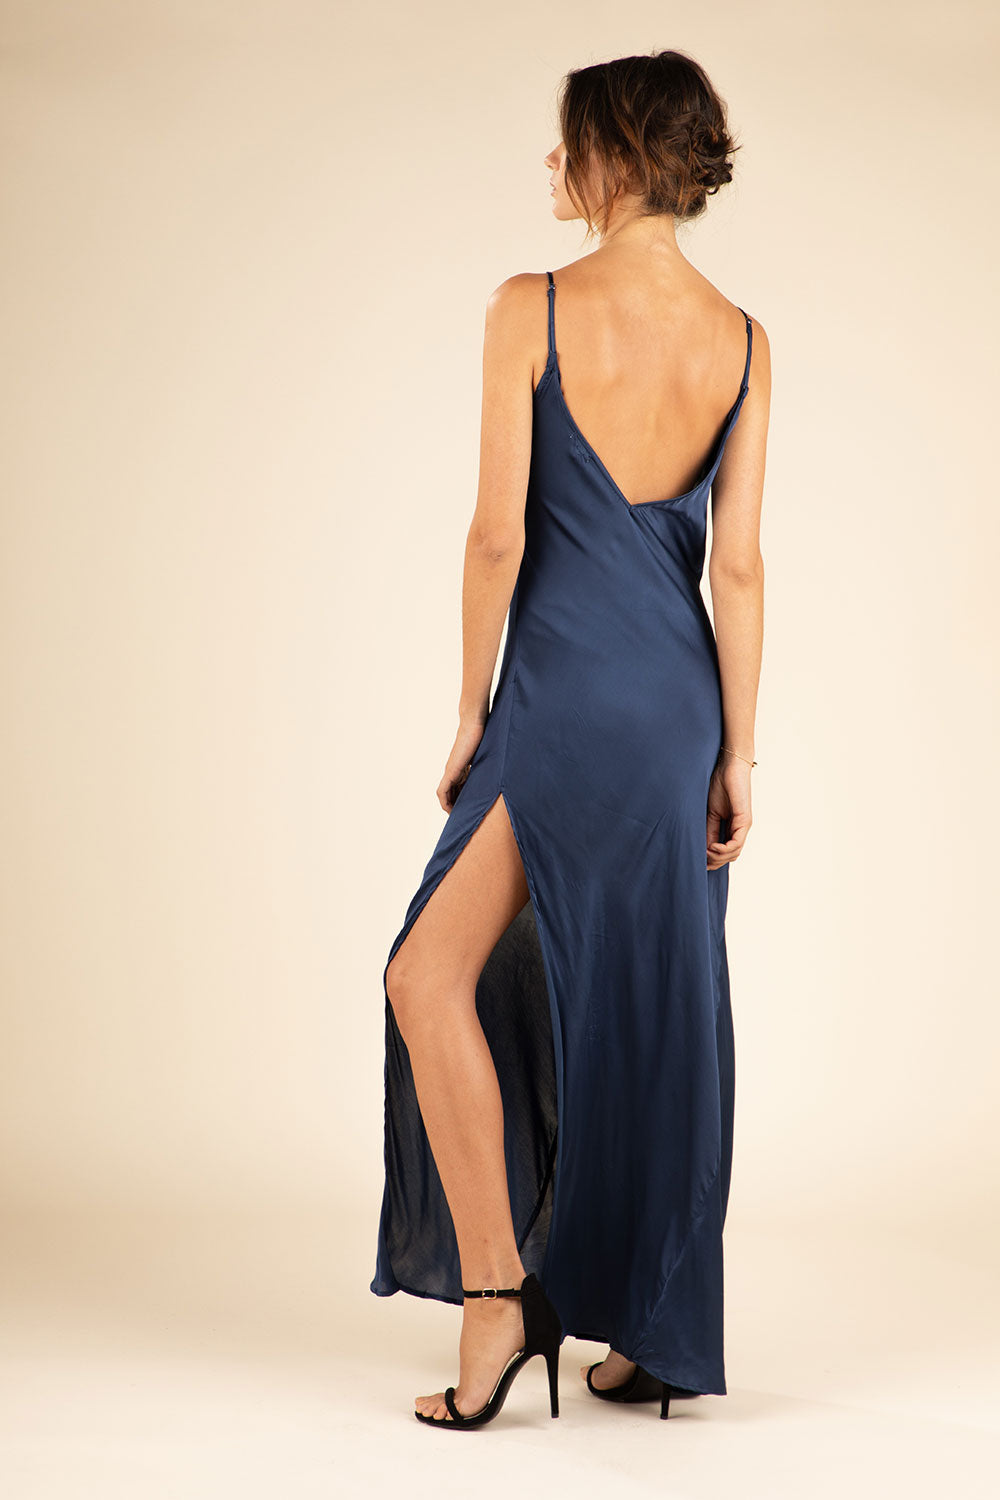 Long Dress Irma Broderie - Navy